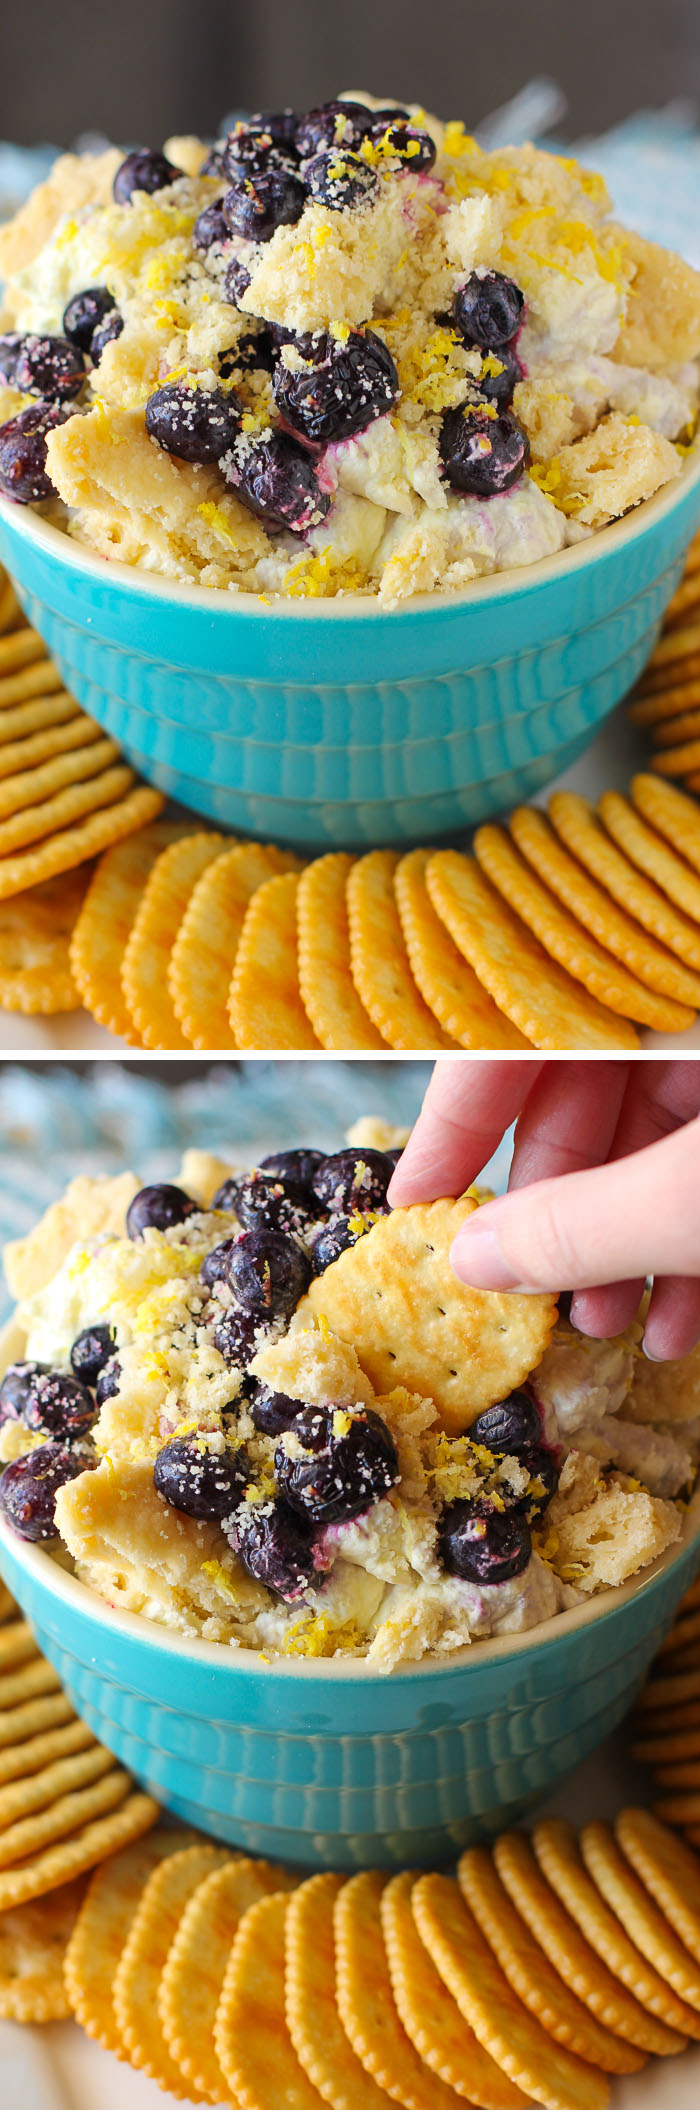 Lemon Blueberry Shortbread Cheesecake Dip